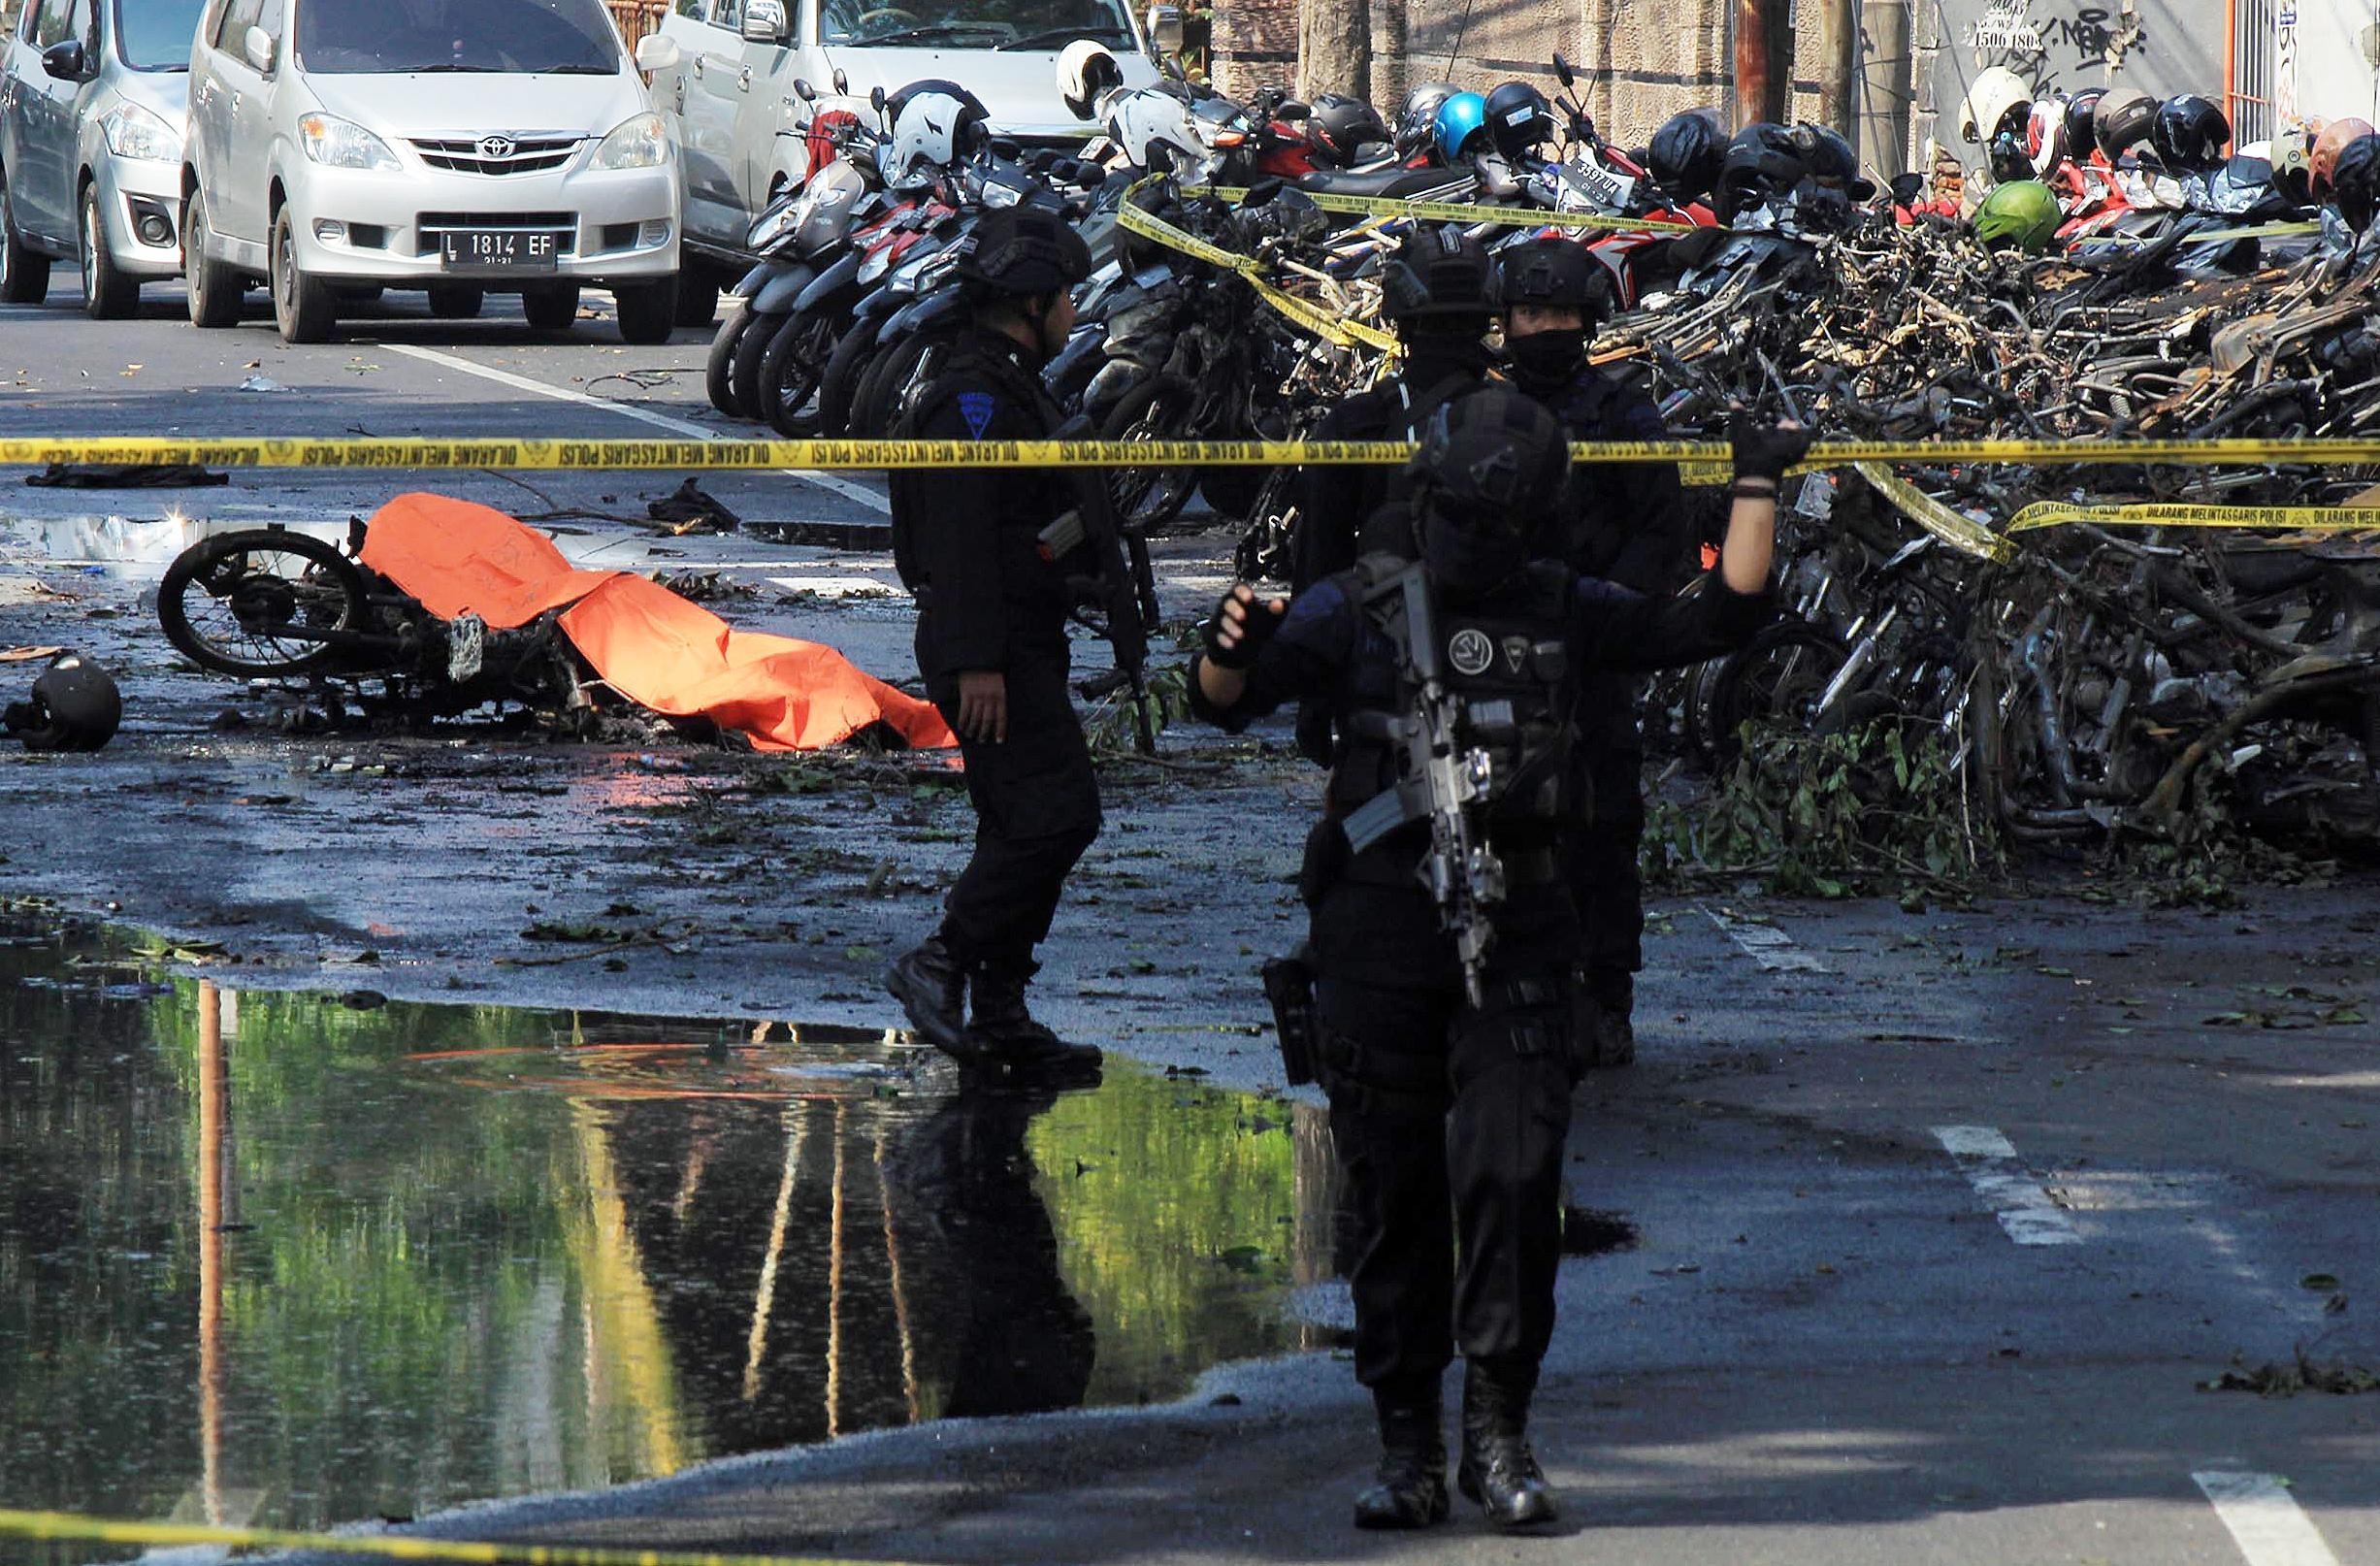 Triplice attentato in chiese indonesiane, 8 morti